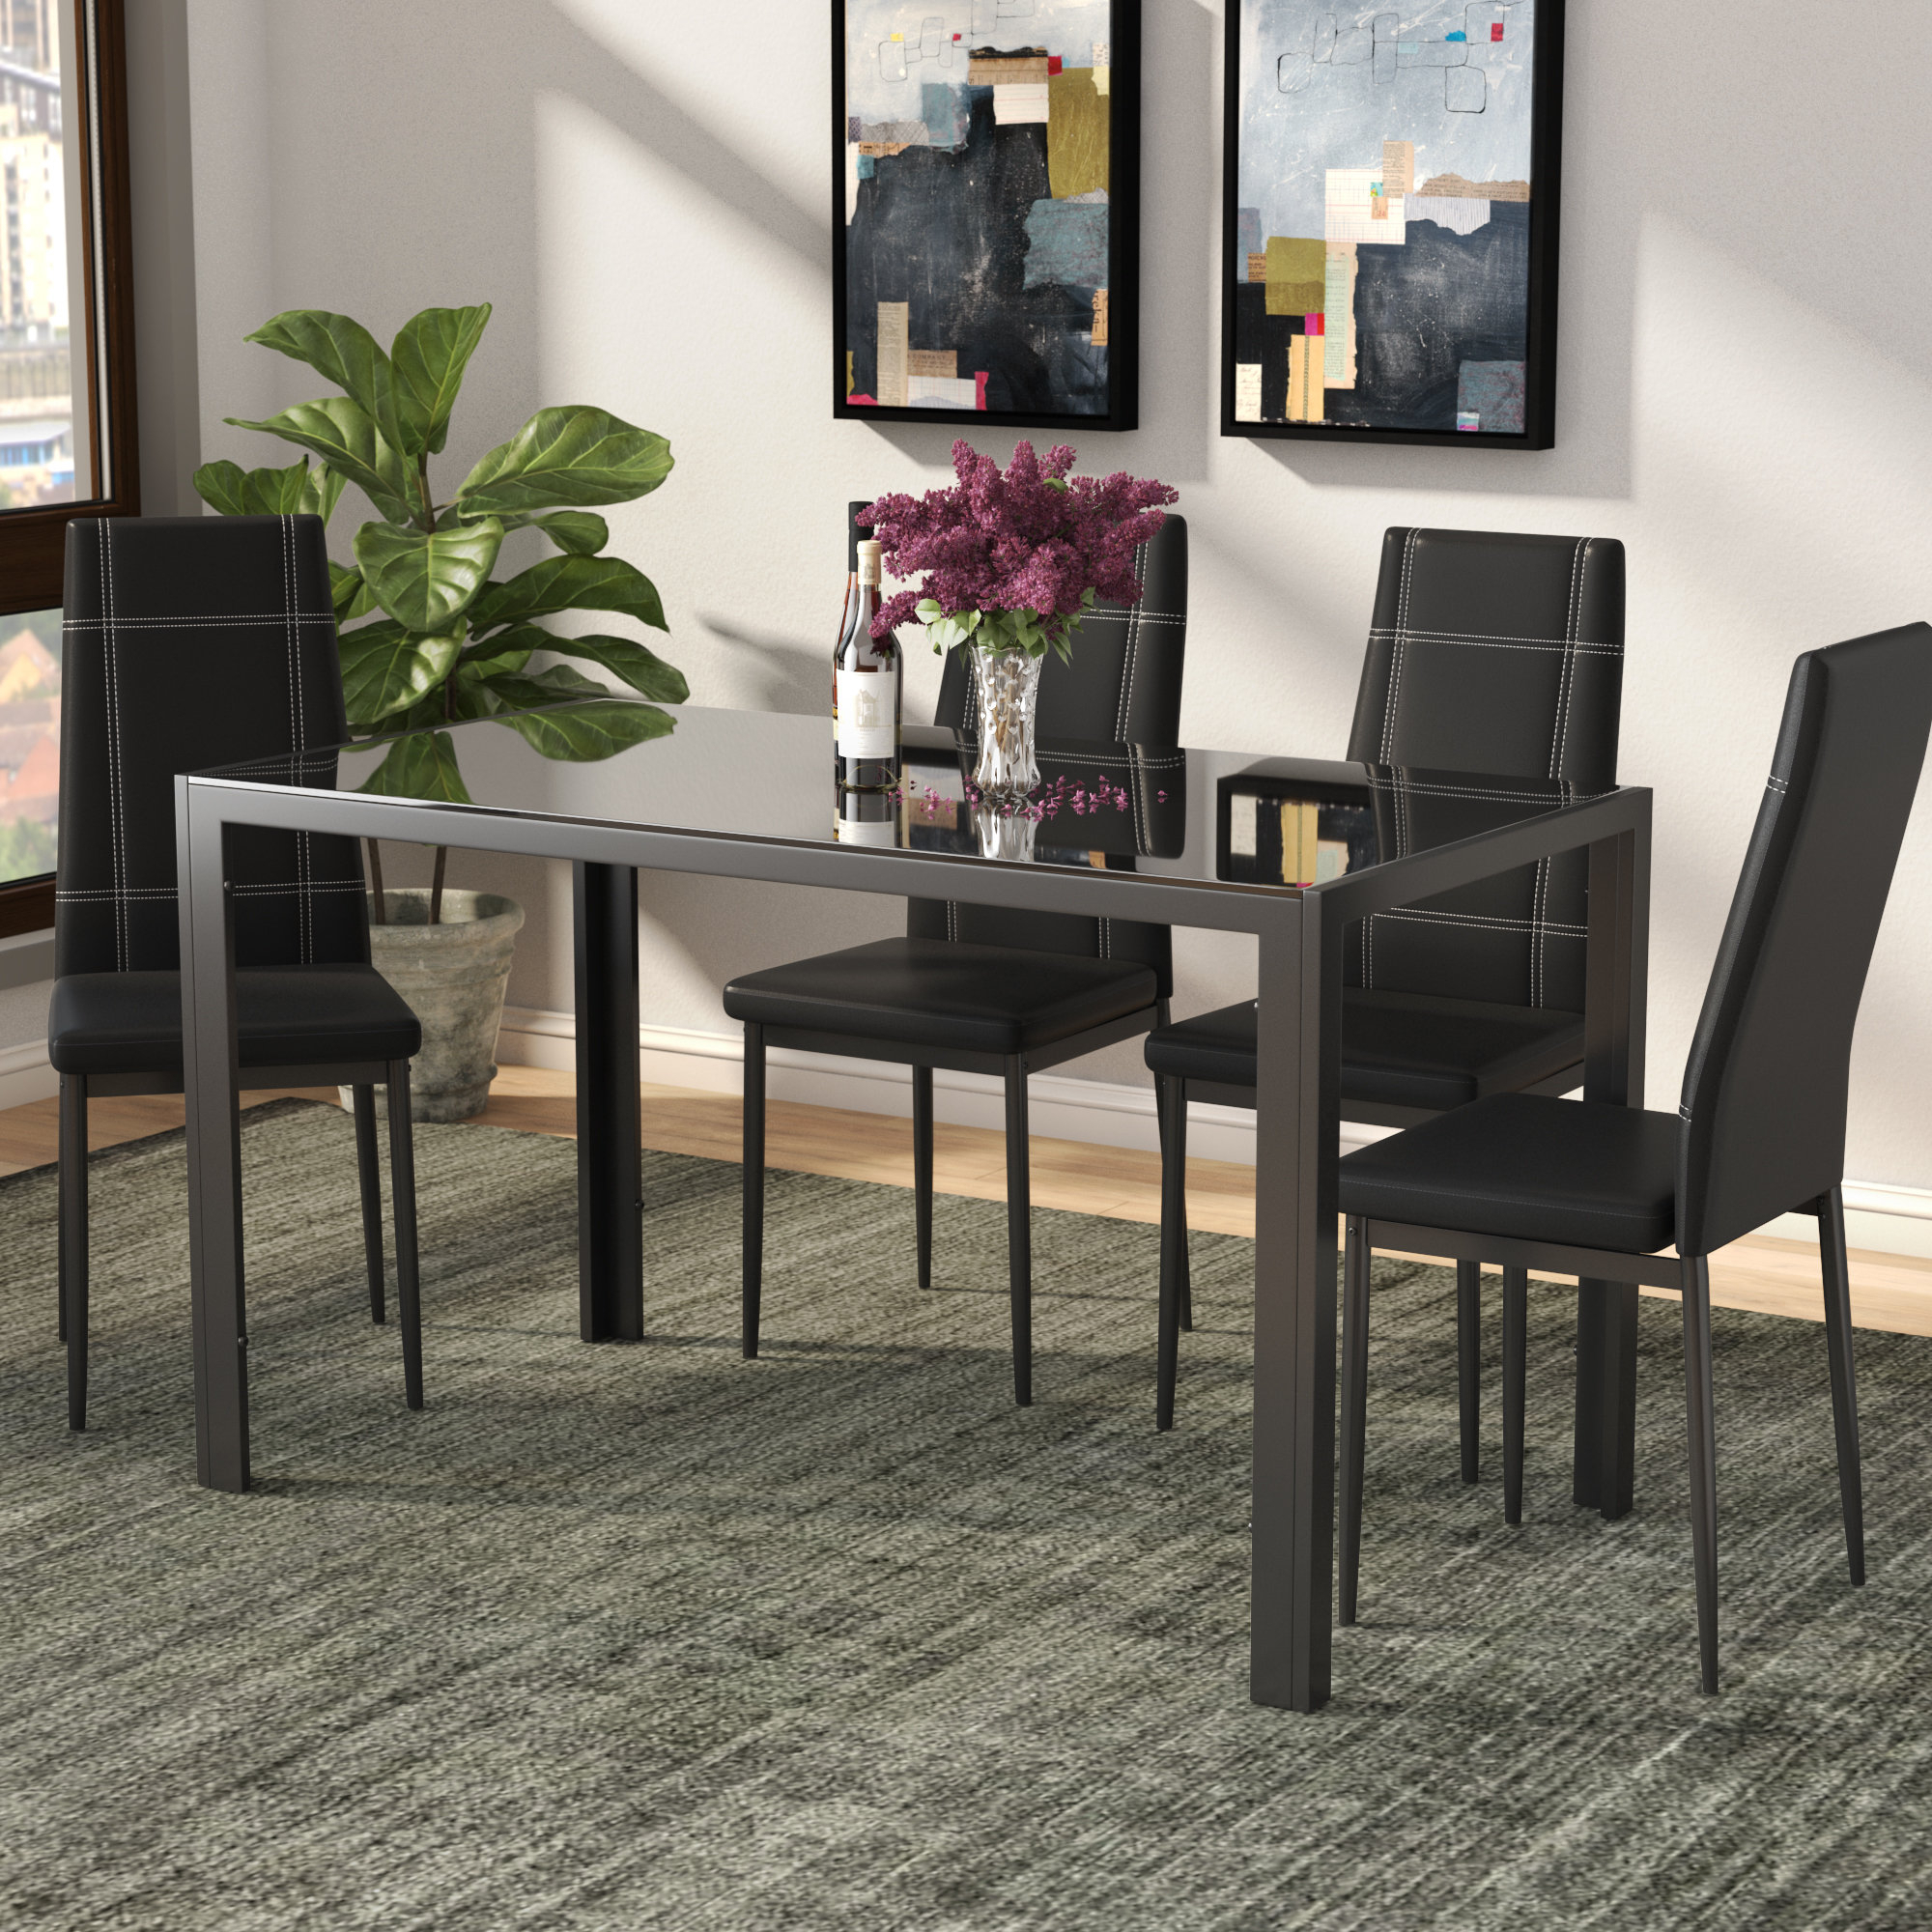 Inspiration about Preferred Autberry 5 Piece Dining Sets With Regard To Ebern Designs Maynard 5 Piece Dining Set & Reviews (#10 of 20)